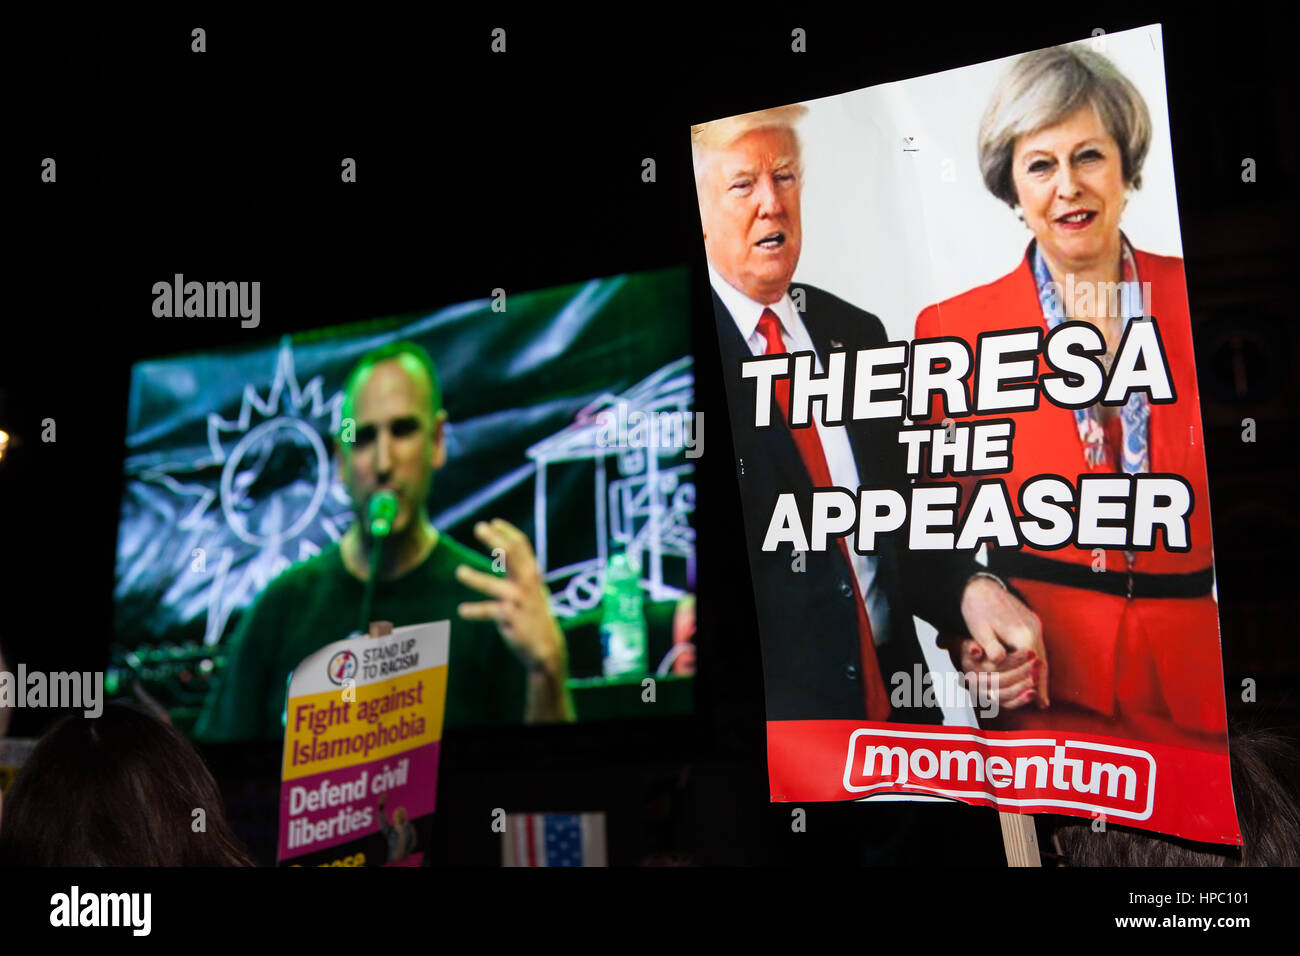 London, UK. 20th Feb, 2017. A speaker at an Anti Trump demonstration at Parliament Square. Protesters objected to - Stock Image